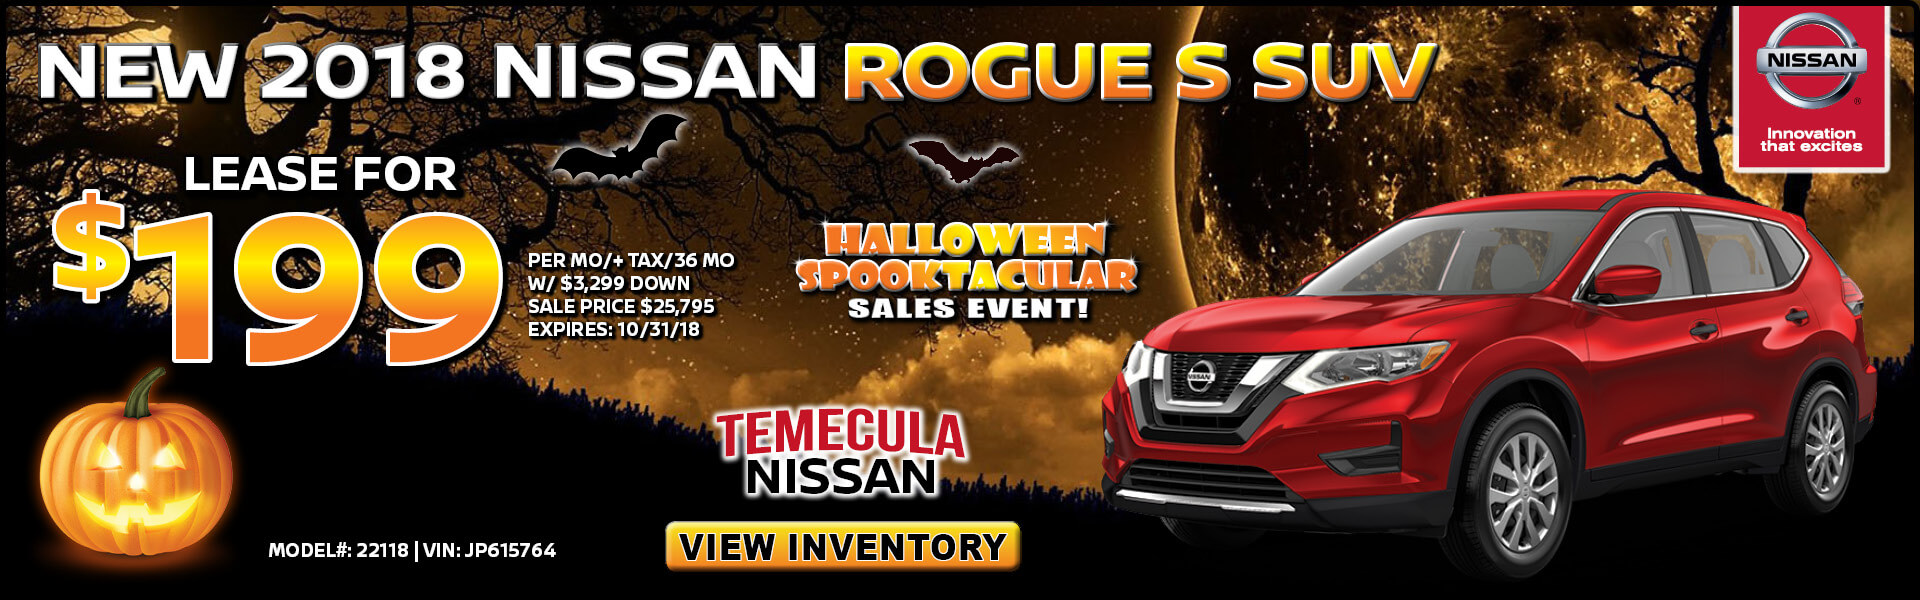 Nissan Rogue $199 Lease